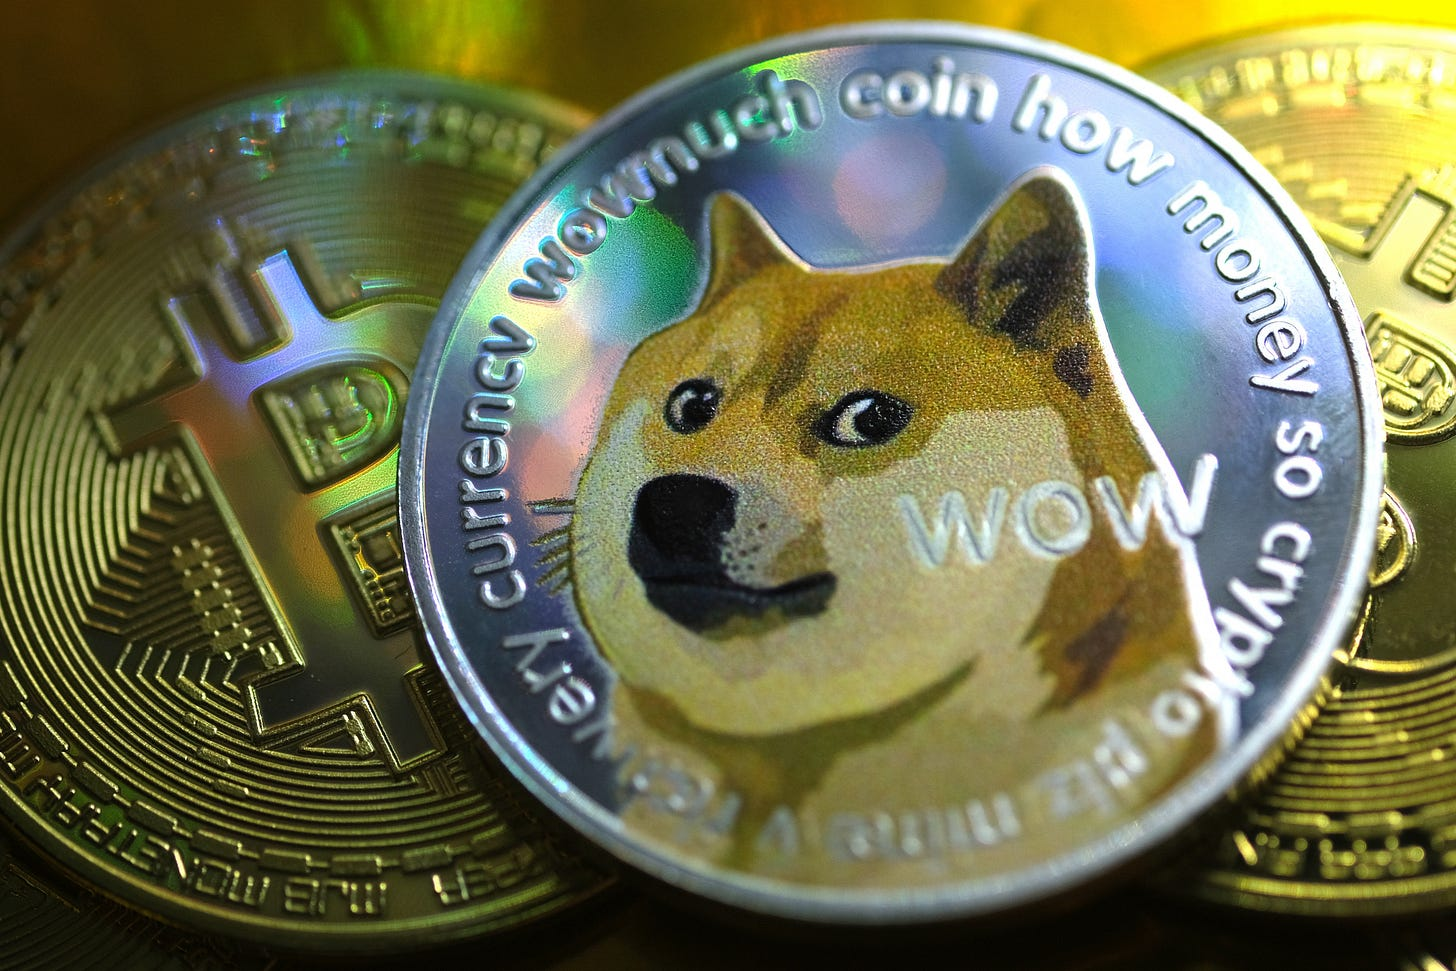 Petition Asking Amazon to Accept Dogecoin Signed by Almost 100,000 People